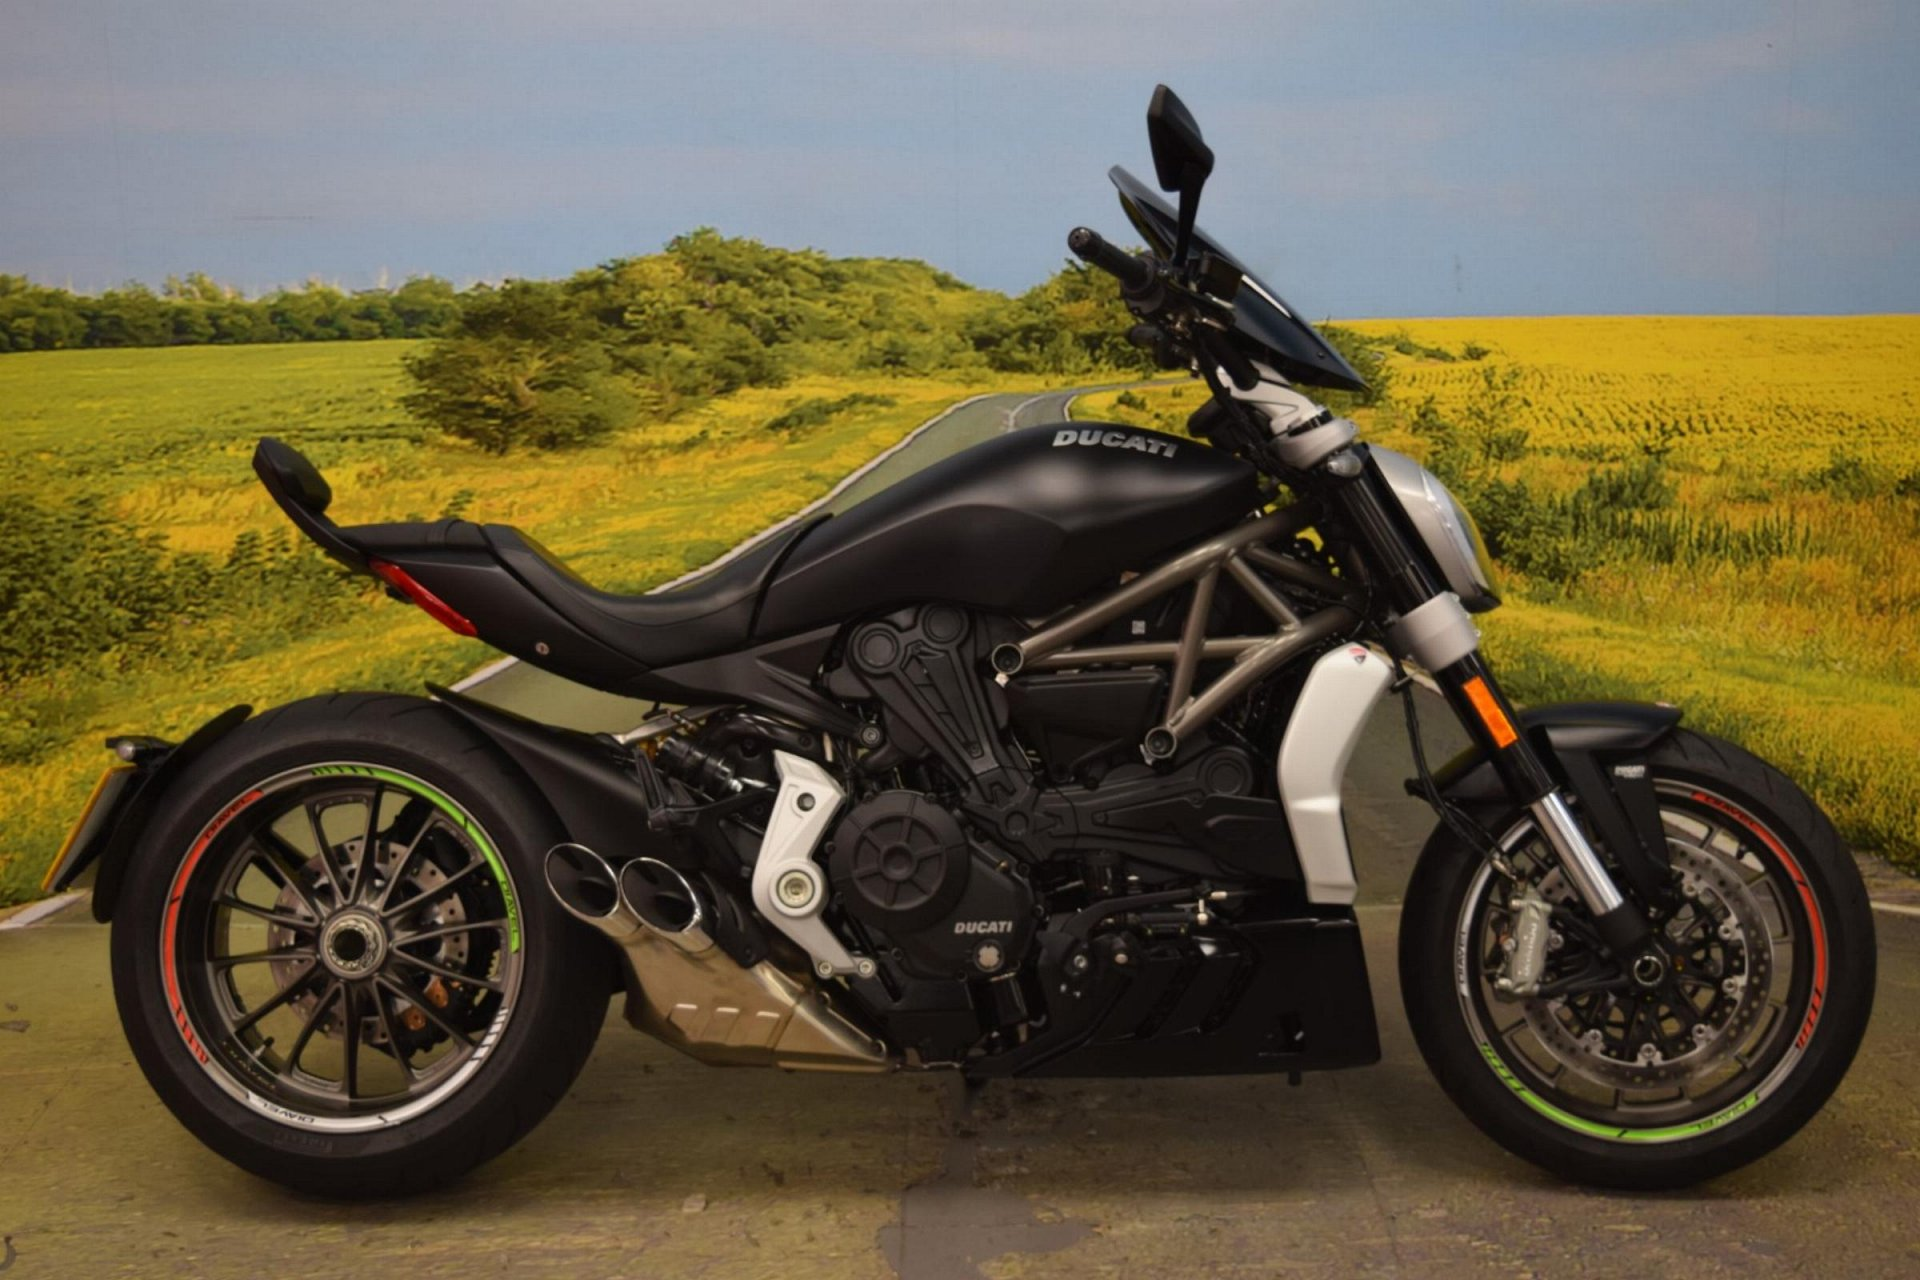 2017 Ducati X Diavel for sale in Staffordshire